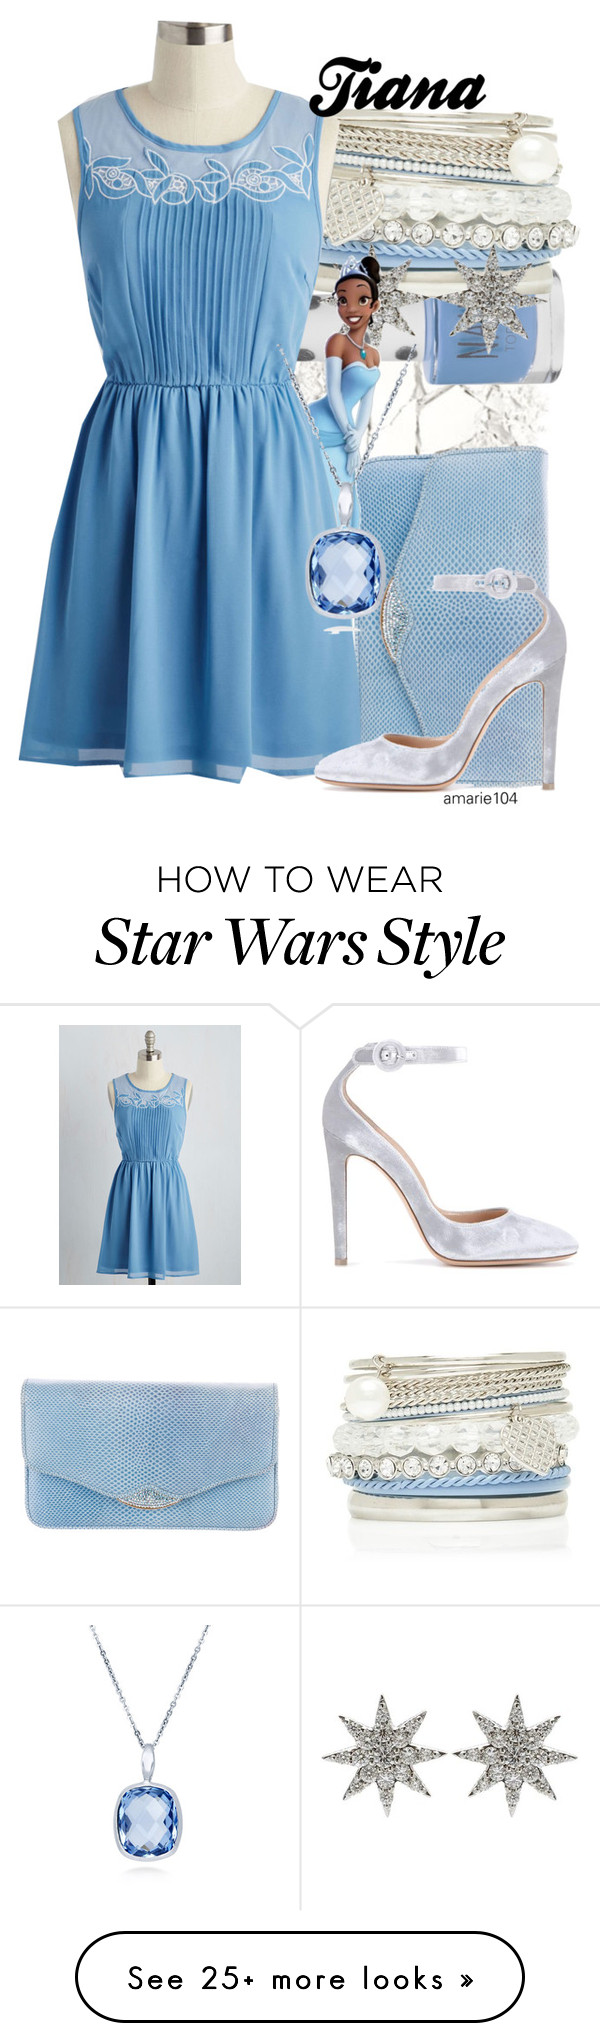 """""""Tiana + The Princess Tag"""" by amarie104 on Polyvore featuring Urban Decay, Topshop, Forever New, Bee Goddess, Judith Leiber, Gianvito Rossi and BERRICLE"""